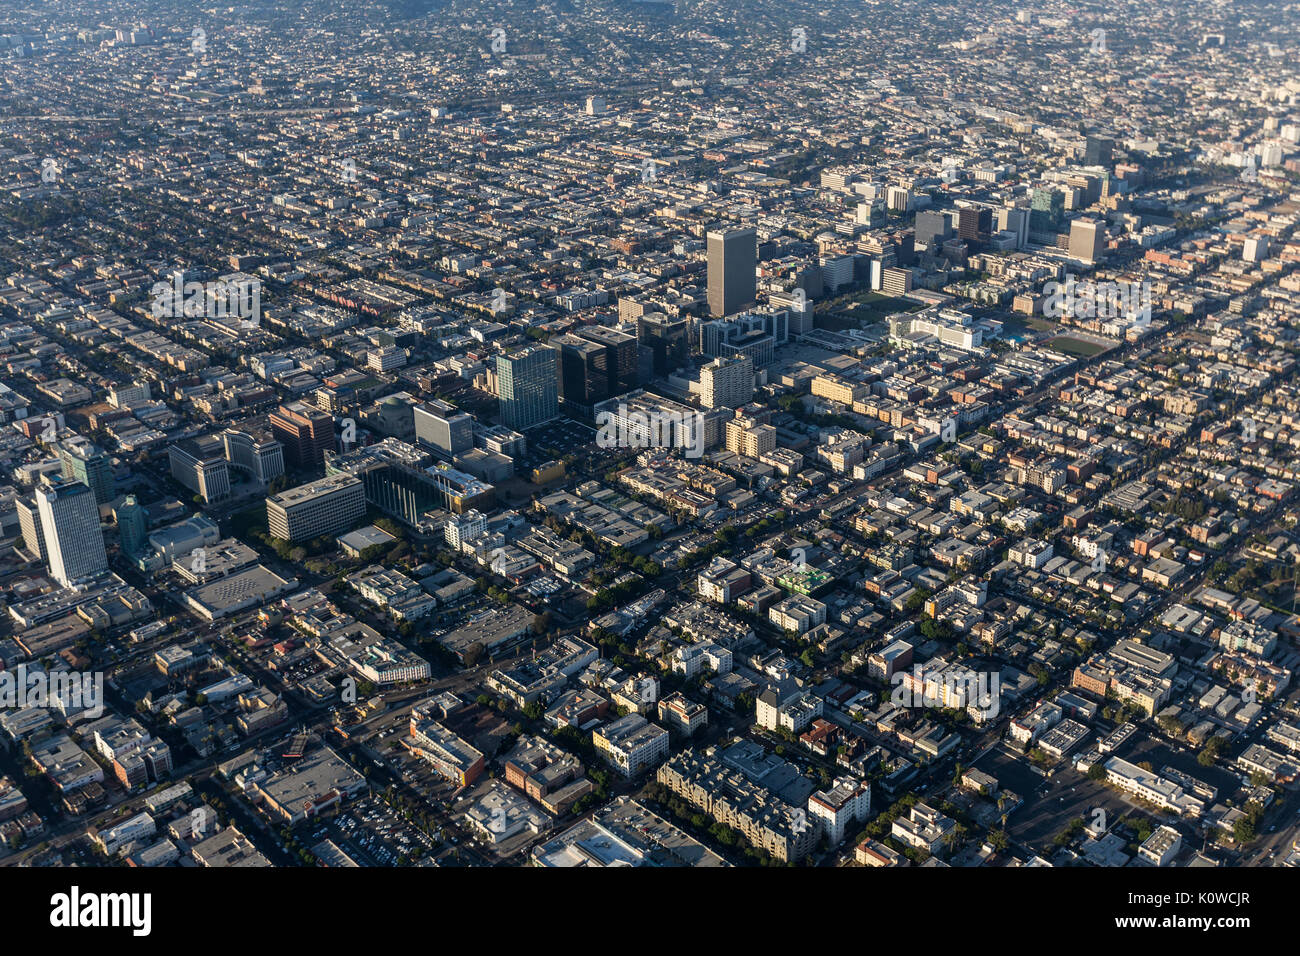 Aerial view of Wilshire Blvd and the Koreatown neighborhood in Los Angeles, California. - Stock Image